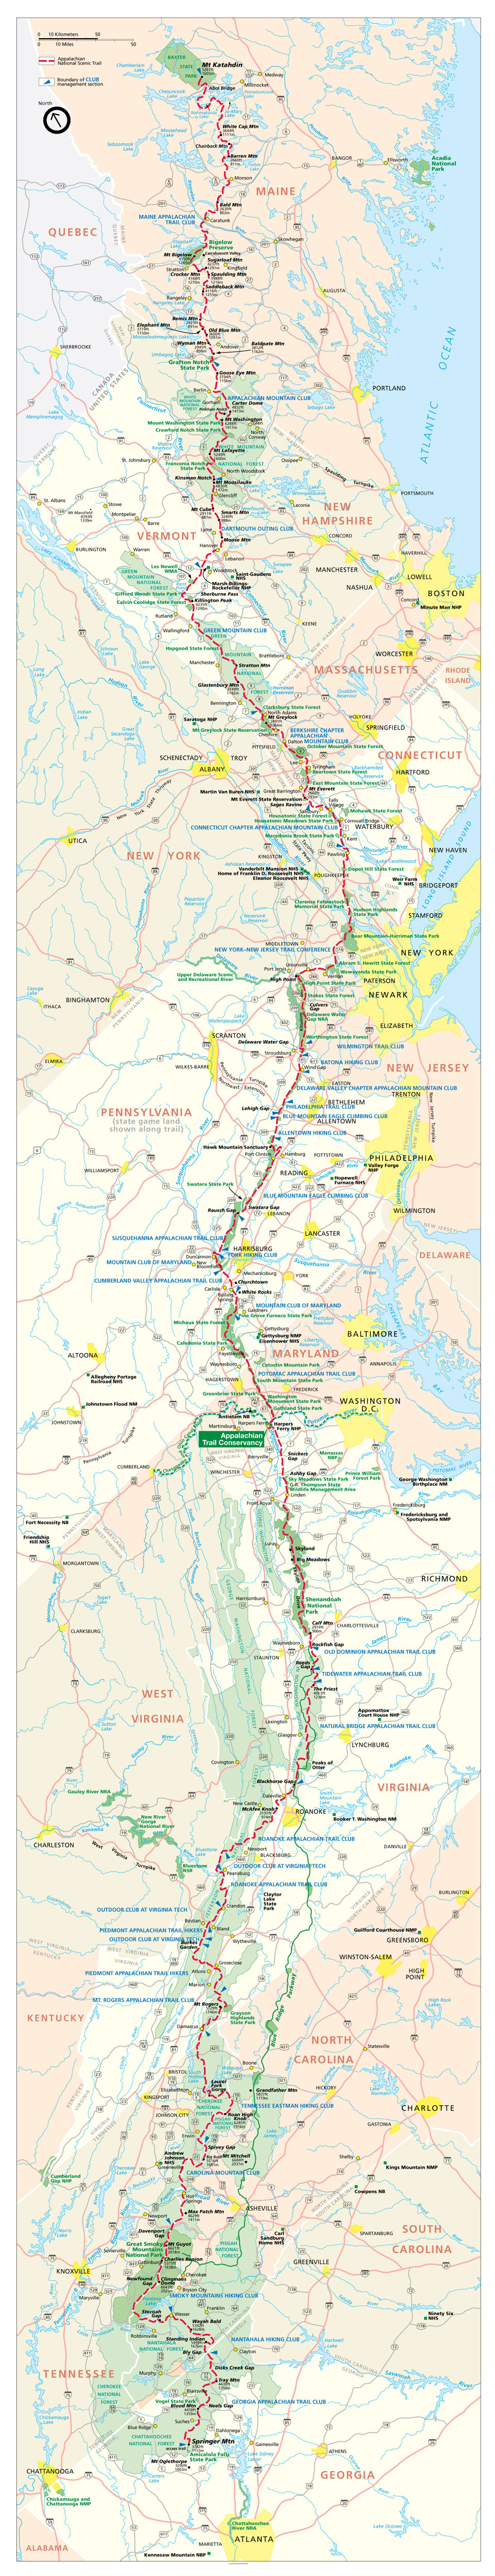 Appalachian Trail In Maine Map.Appalachian Trail Map From Georgia To Maine